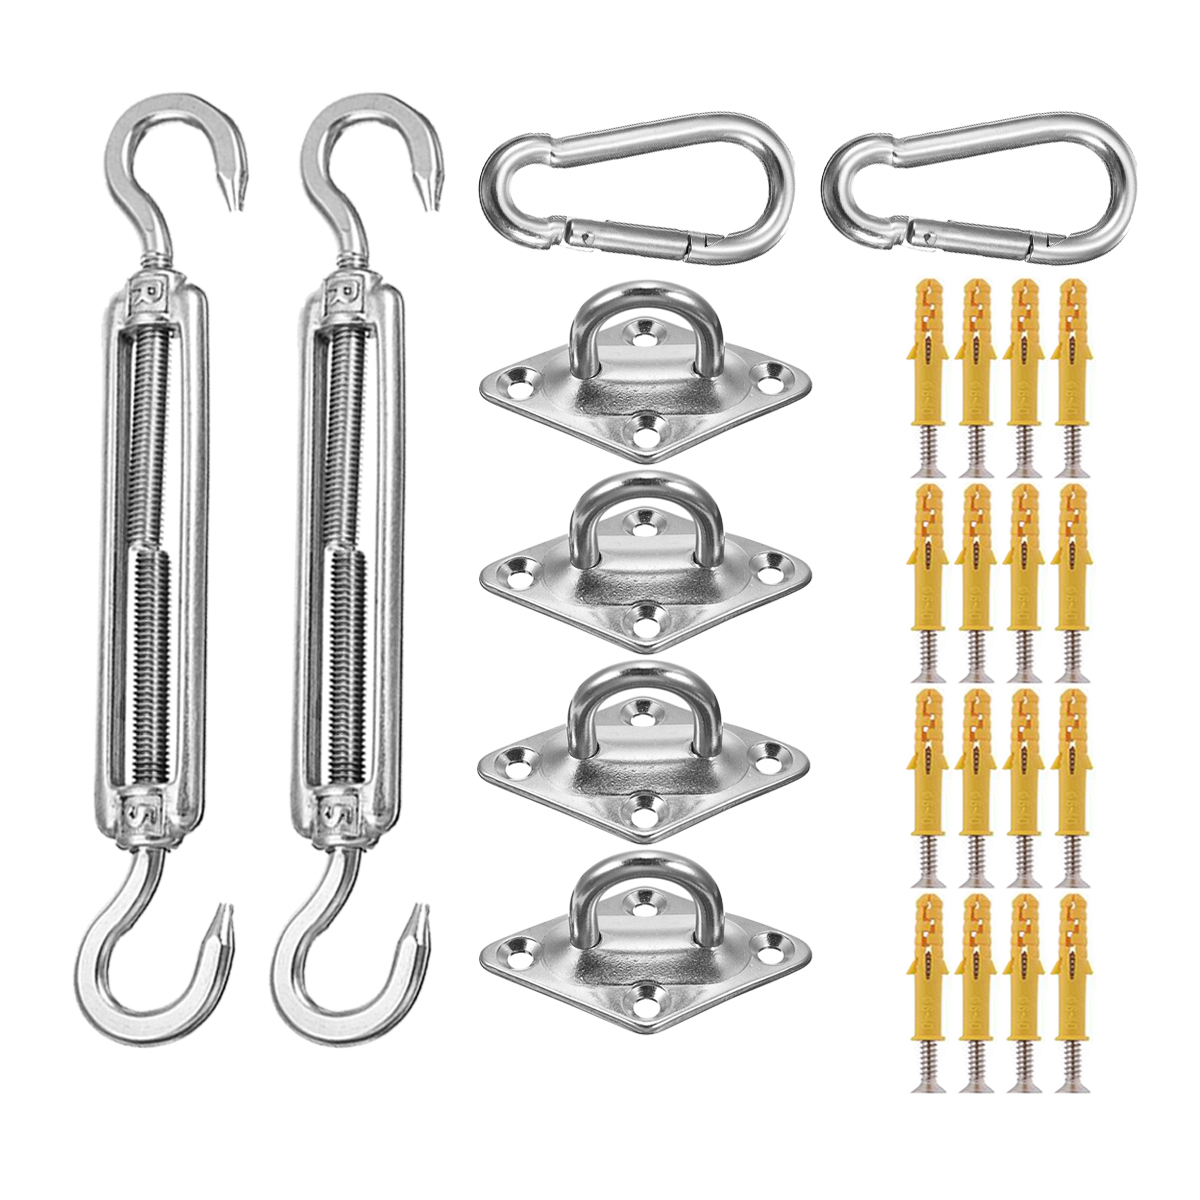 24pcs Pad Eye Turnbuckle Snap Hook Screw with Wall Plug Accessories for Rectangle or Square